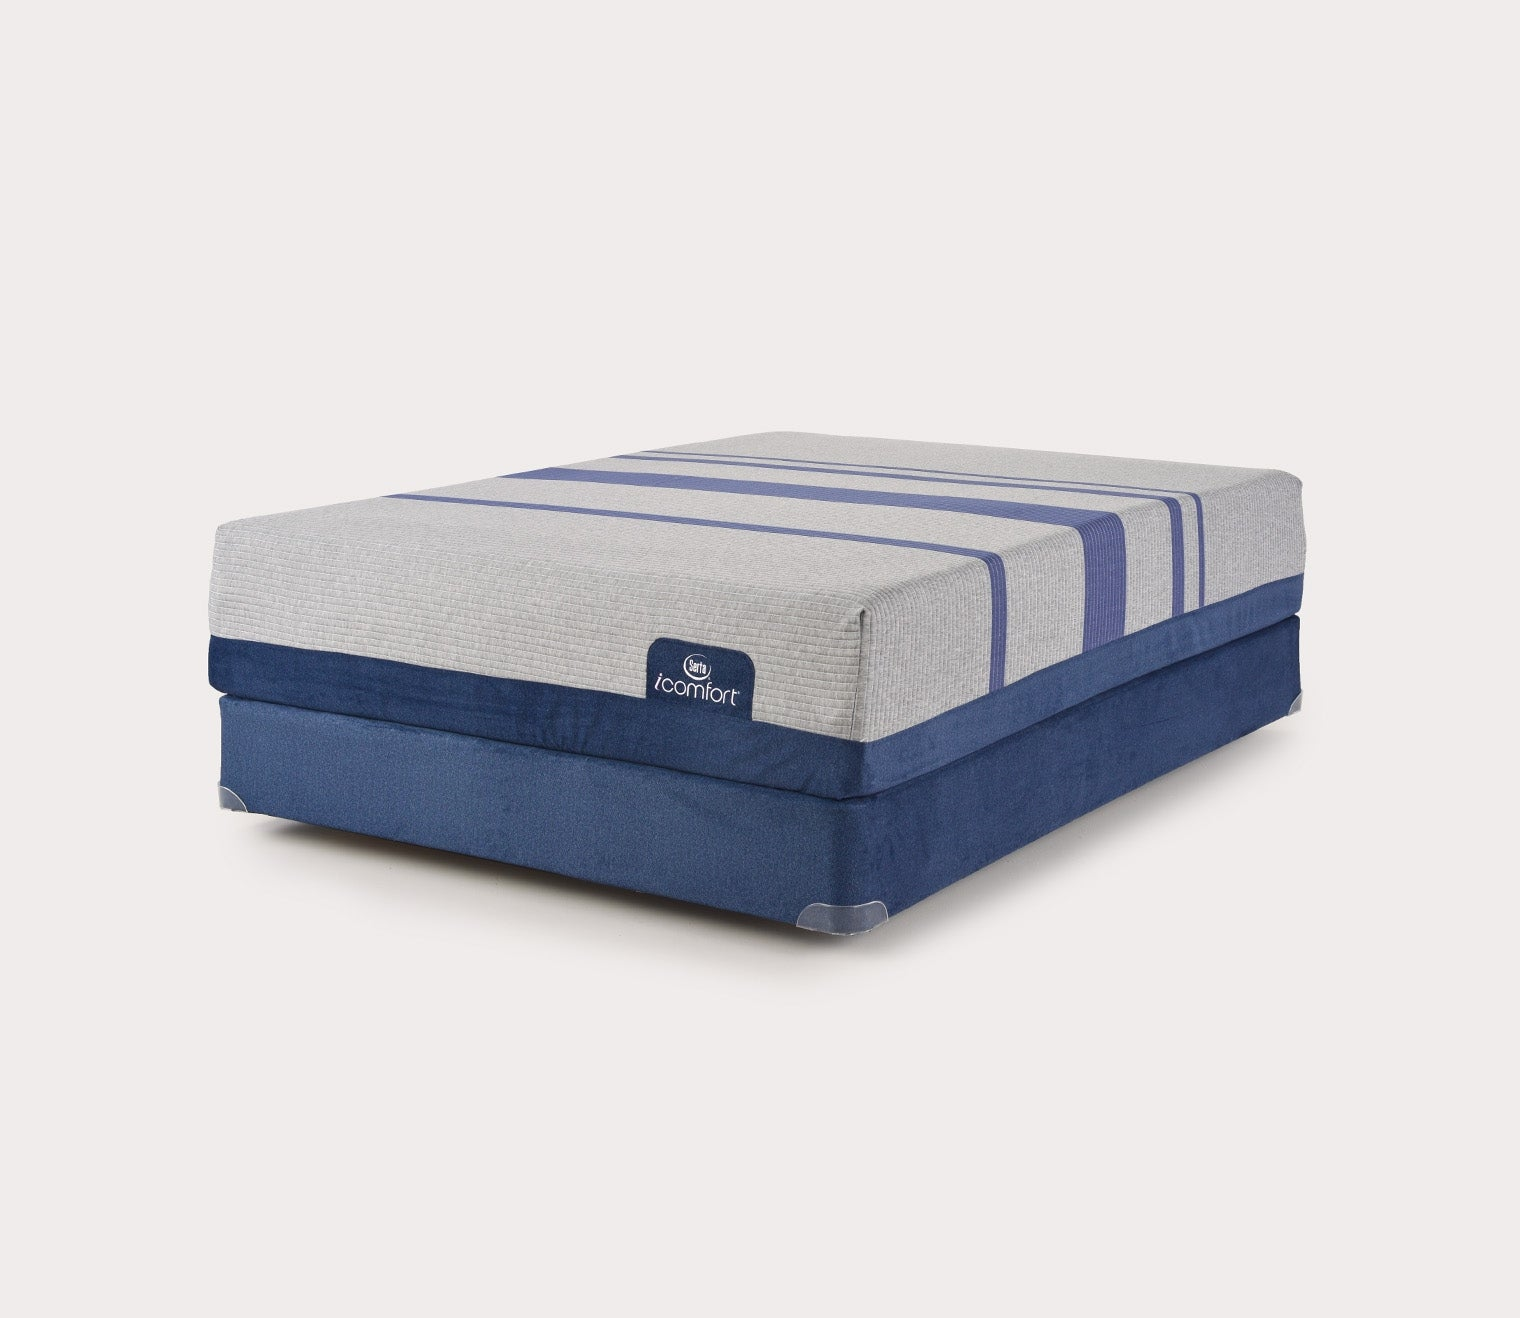 icomfort bed queen t pt pillow hybrid blue top item products plush fusion serta mattress